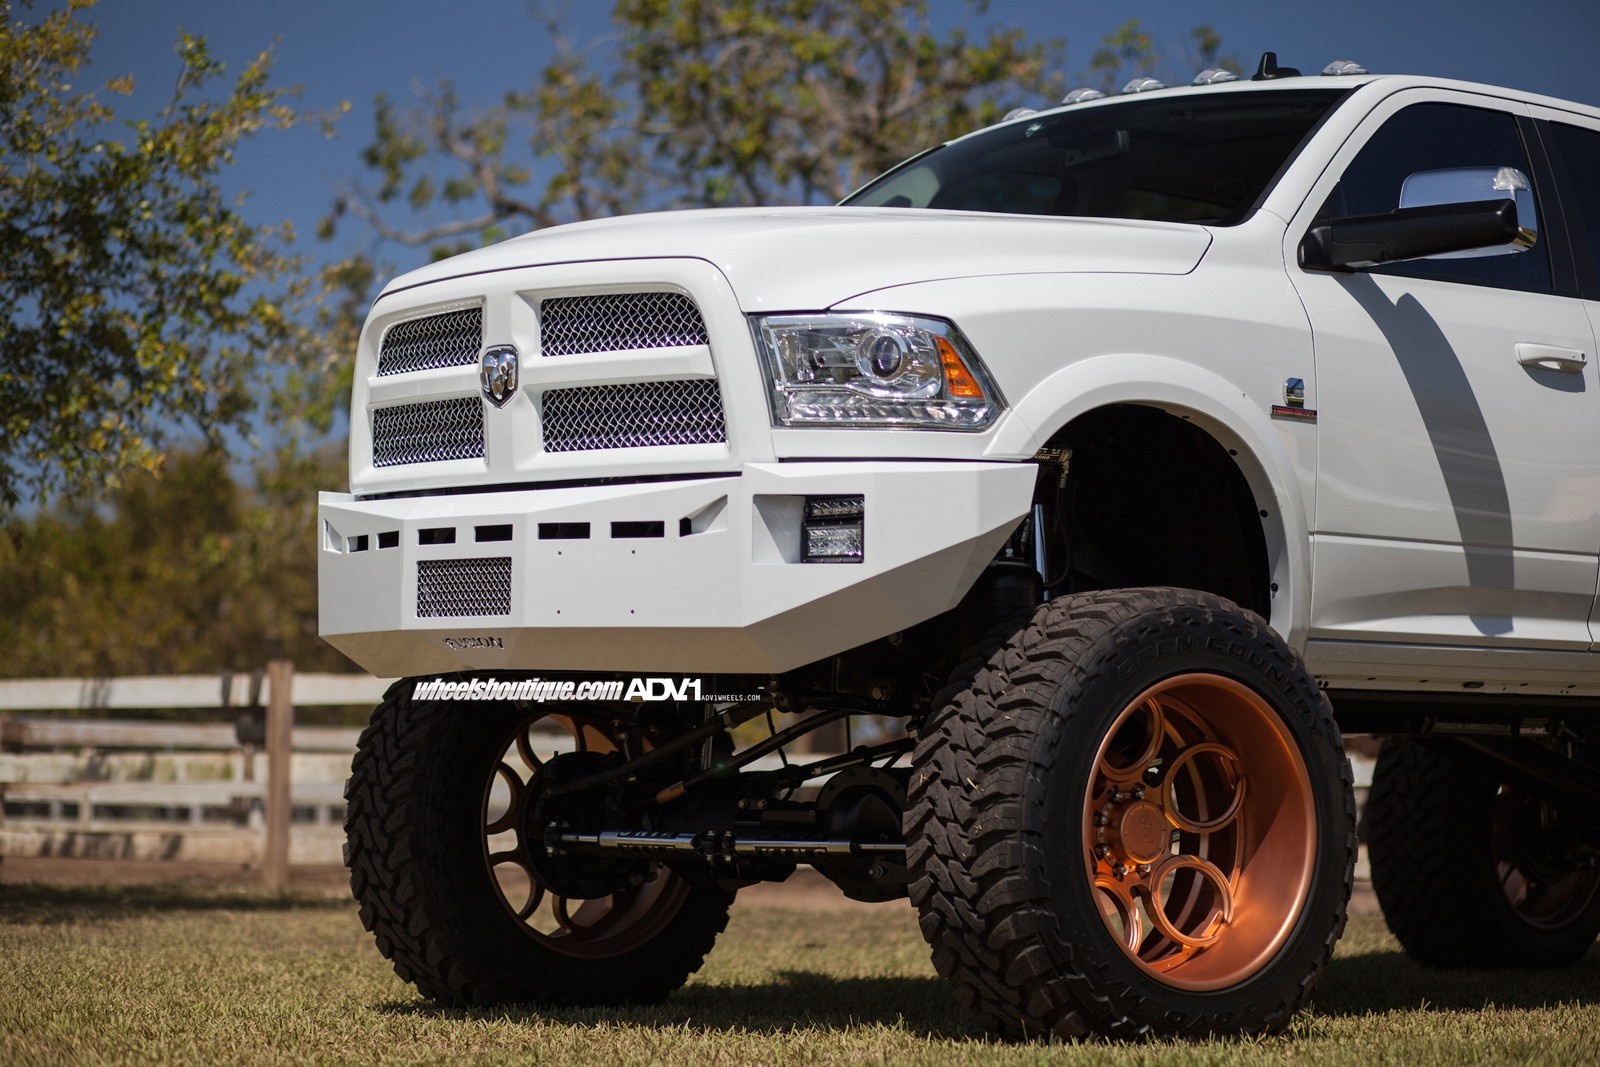 Lifted Dodge Ram 2500 >> Lifted Ram 2500 On Rose Gold Wheels Meets a Horse - autoevolution